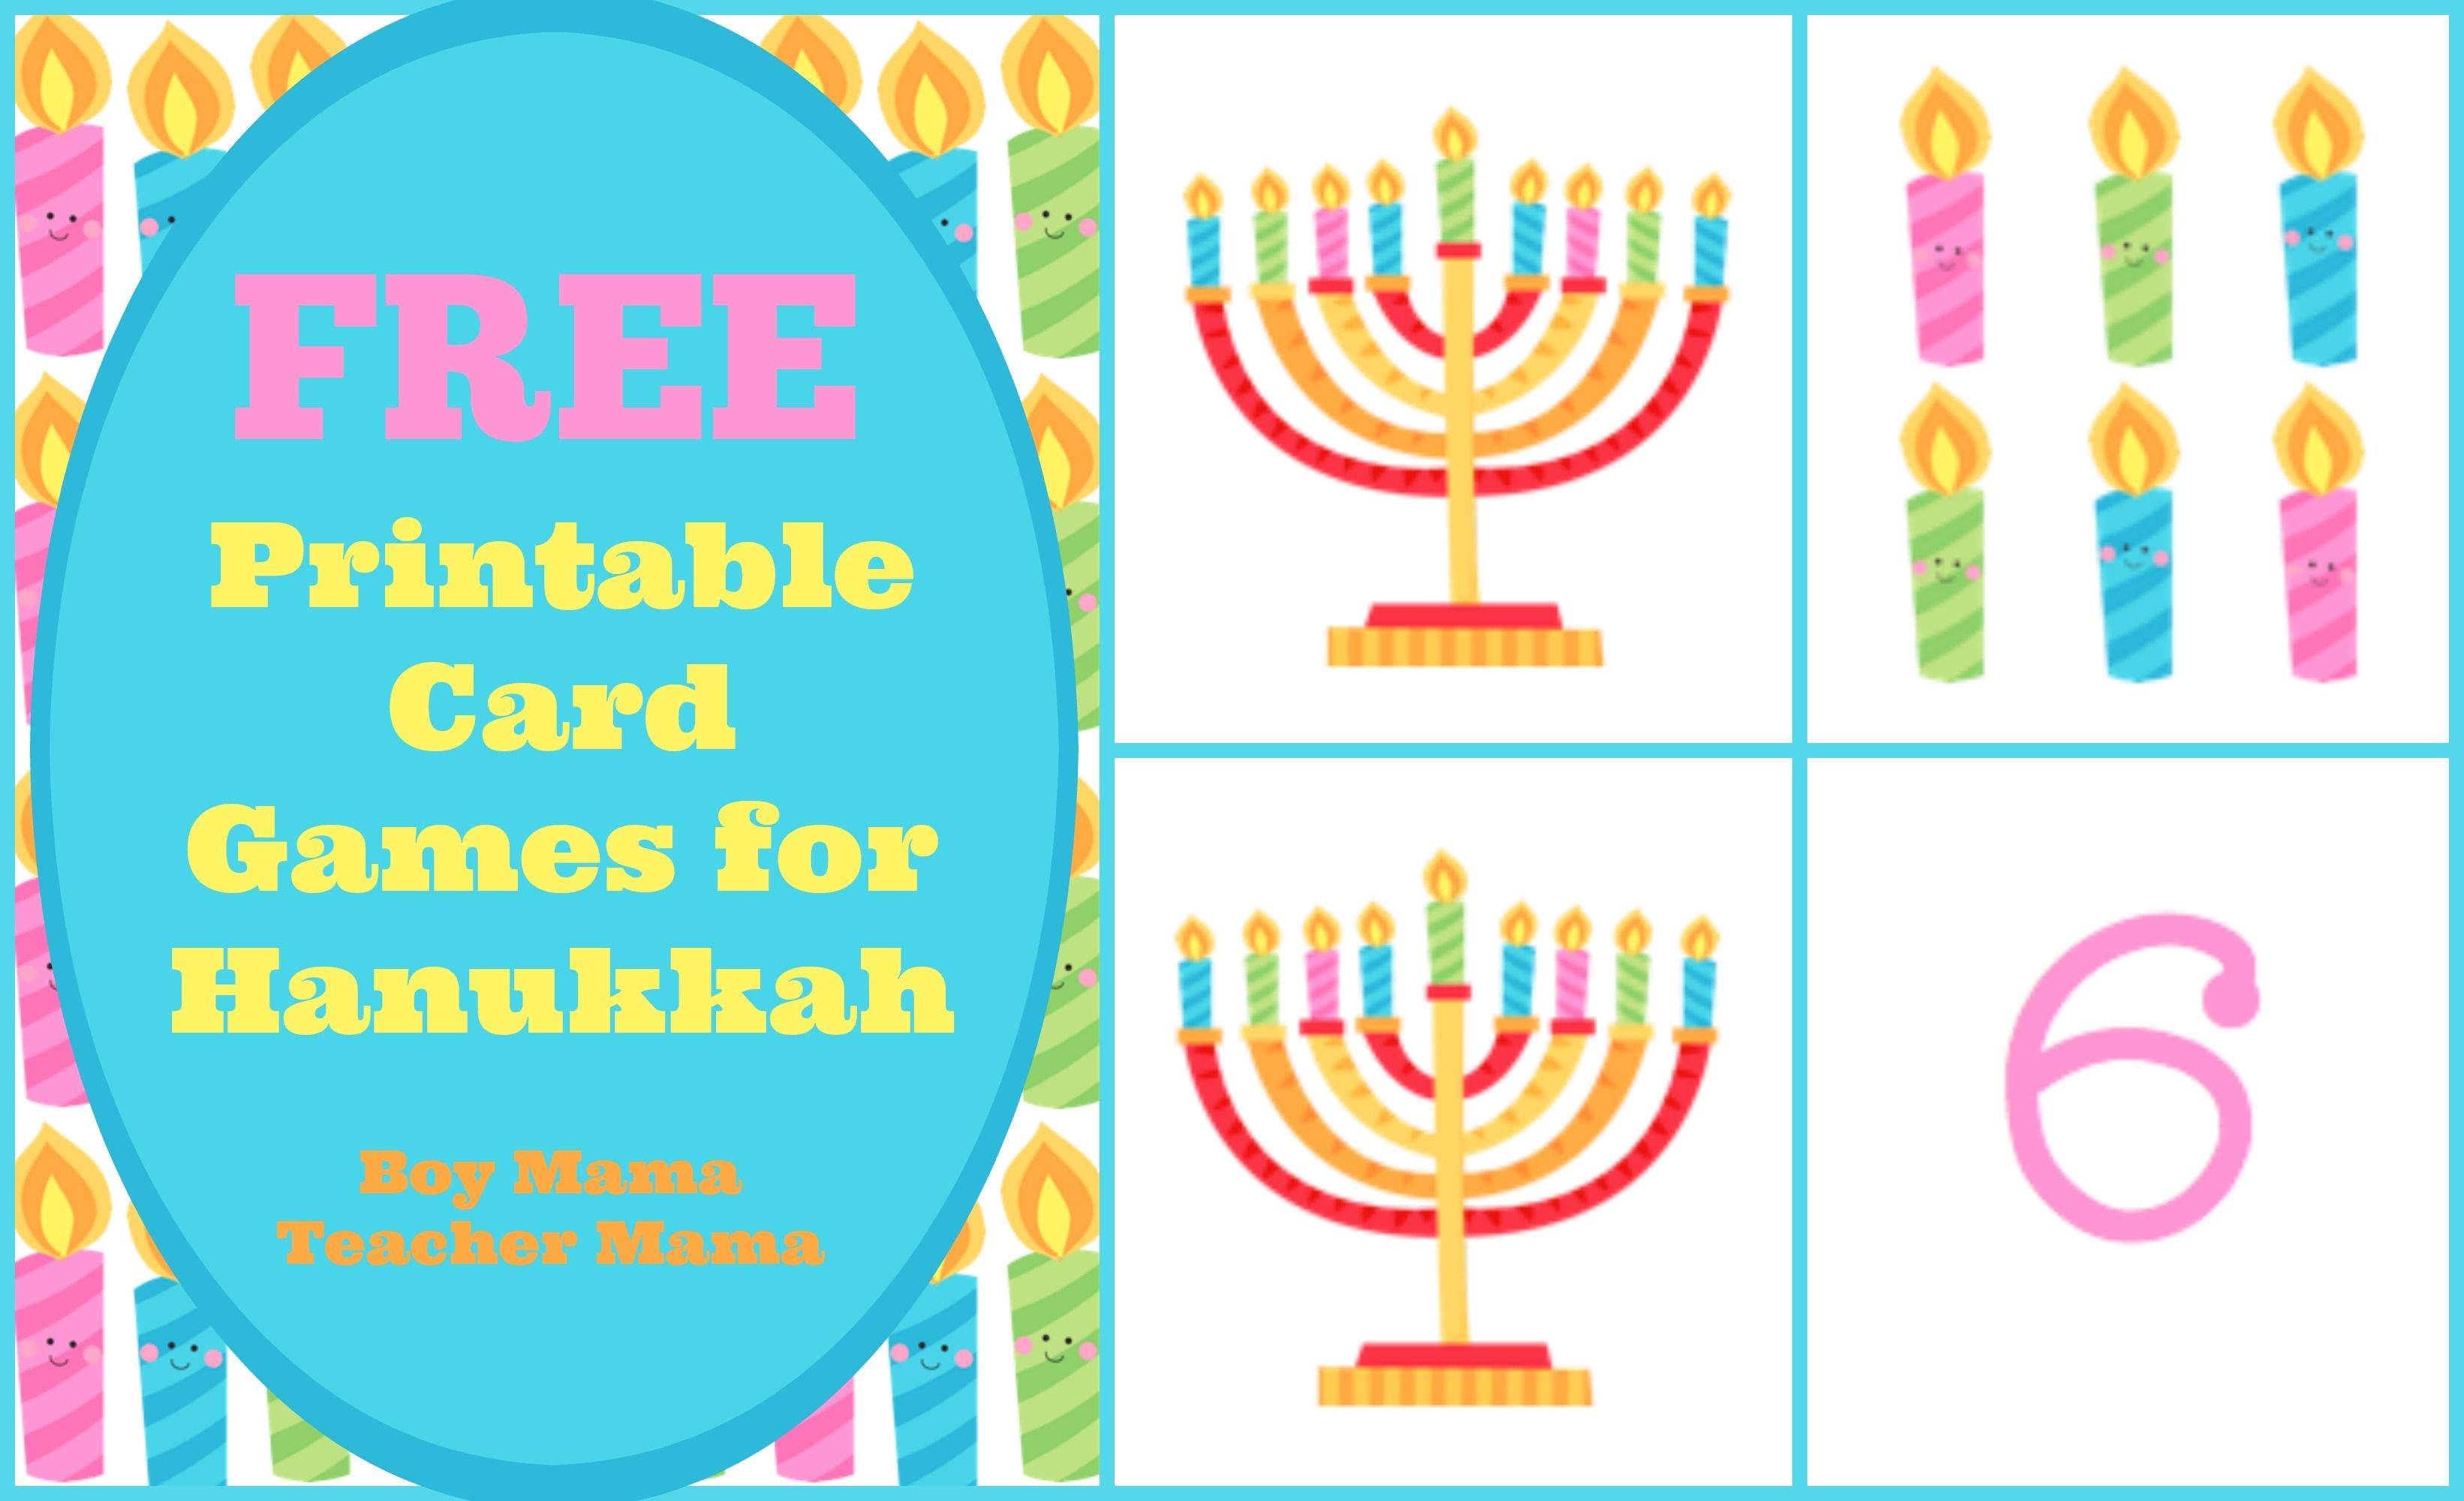 Boy Mama Free Printable Card Games For Hanukkah Free Printable Cards Hannukah Crafts Printable Cards [ 2000 x 3283 Pixel ]